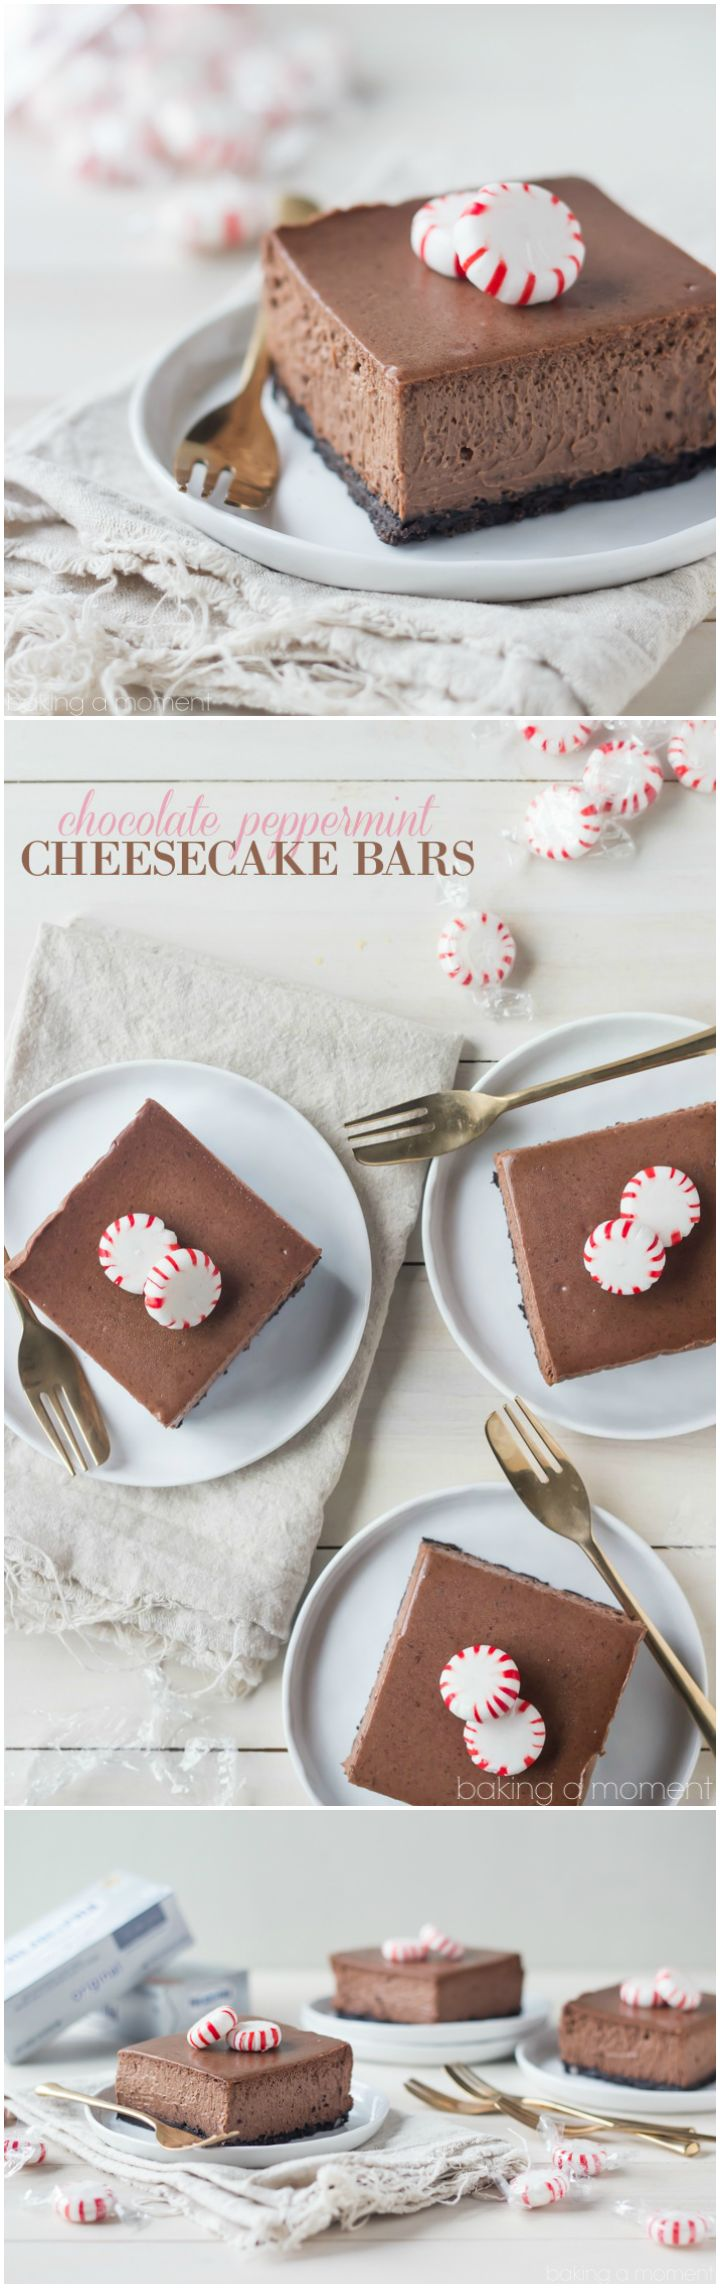 I made these Chocolate Peppermint Cheesecake Bars for Christmas and they were a huge hit! The cheesecake is so chocolate-y and creamy, and I loved that cool hit of peppermint! @spreadphilly #OneAndOnlyPhilly #HolidaysAreMadeWith #spon